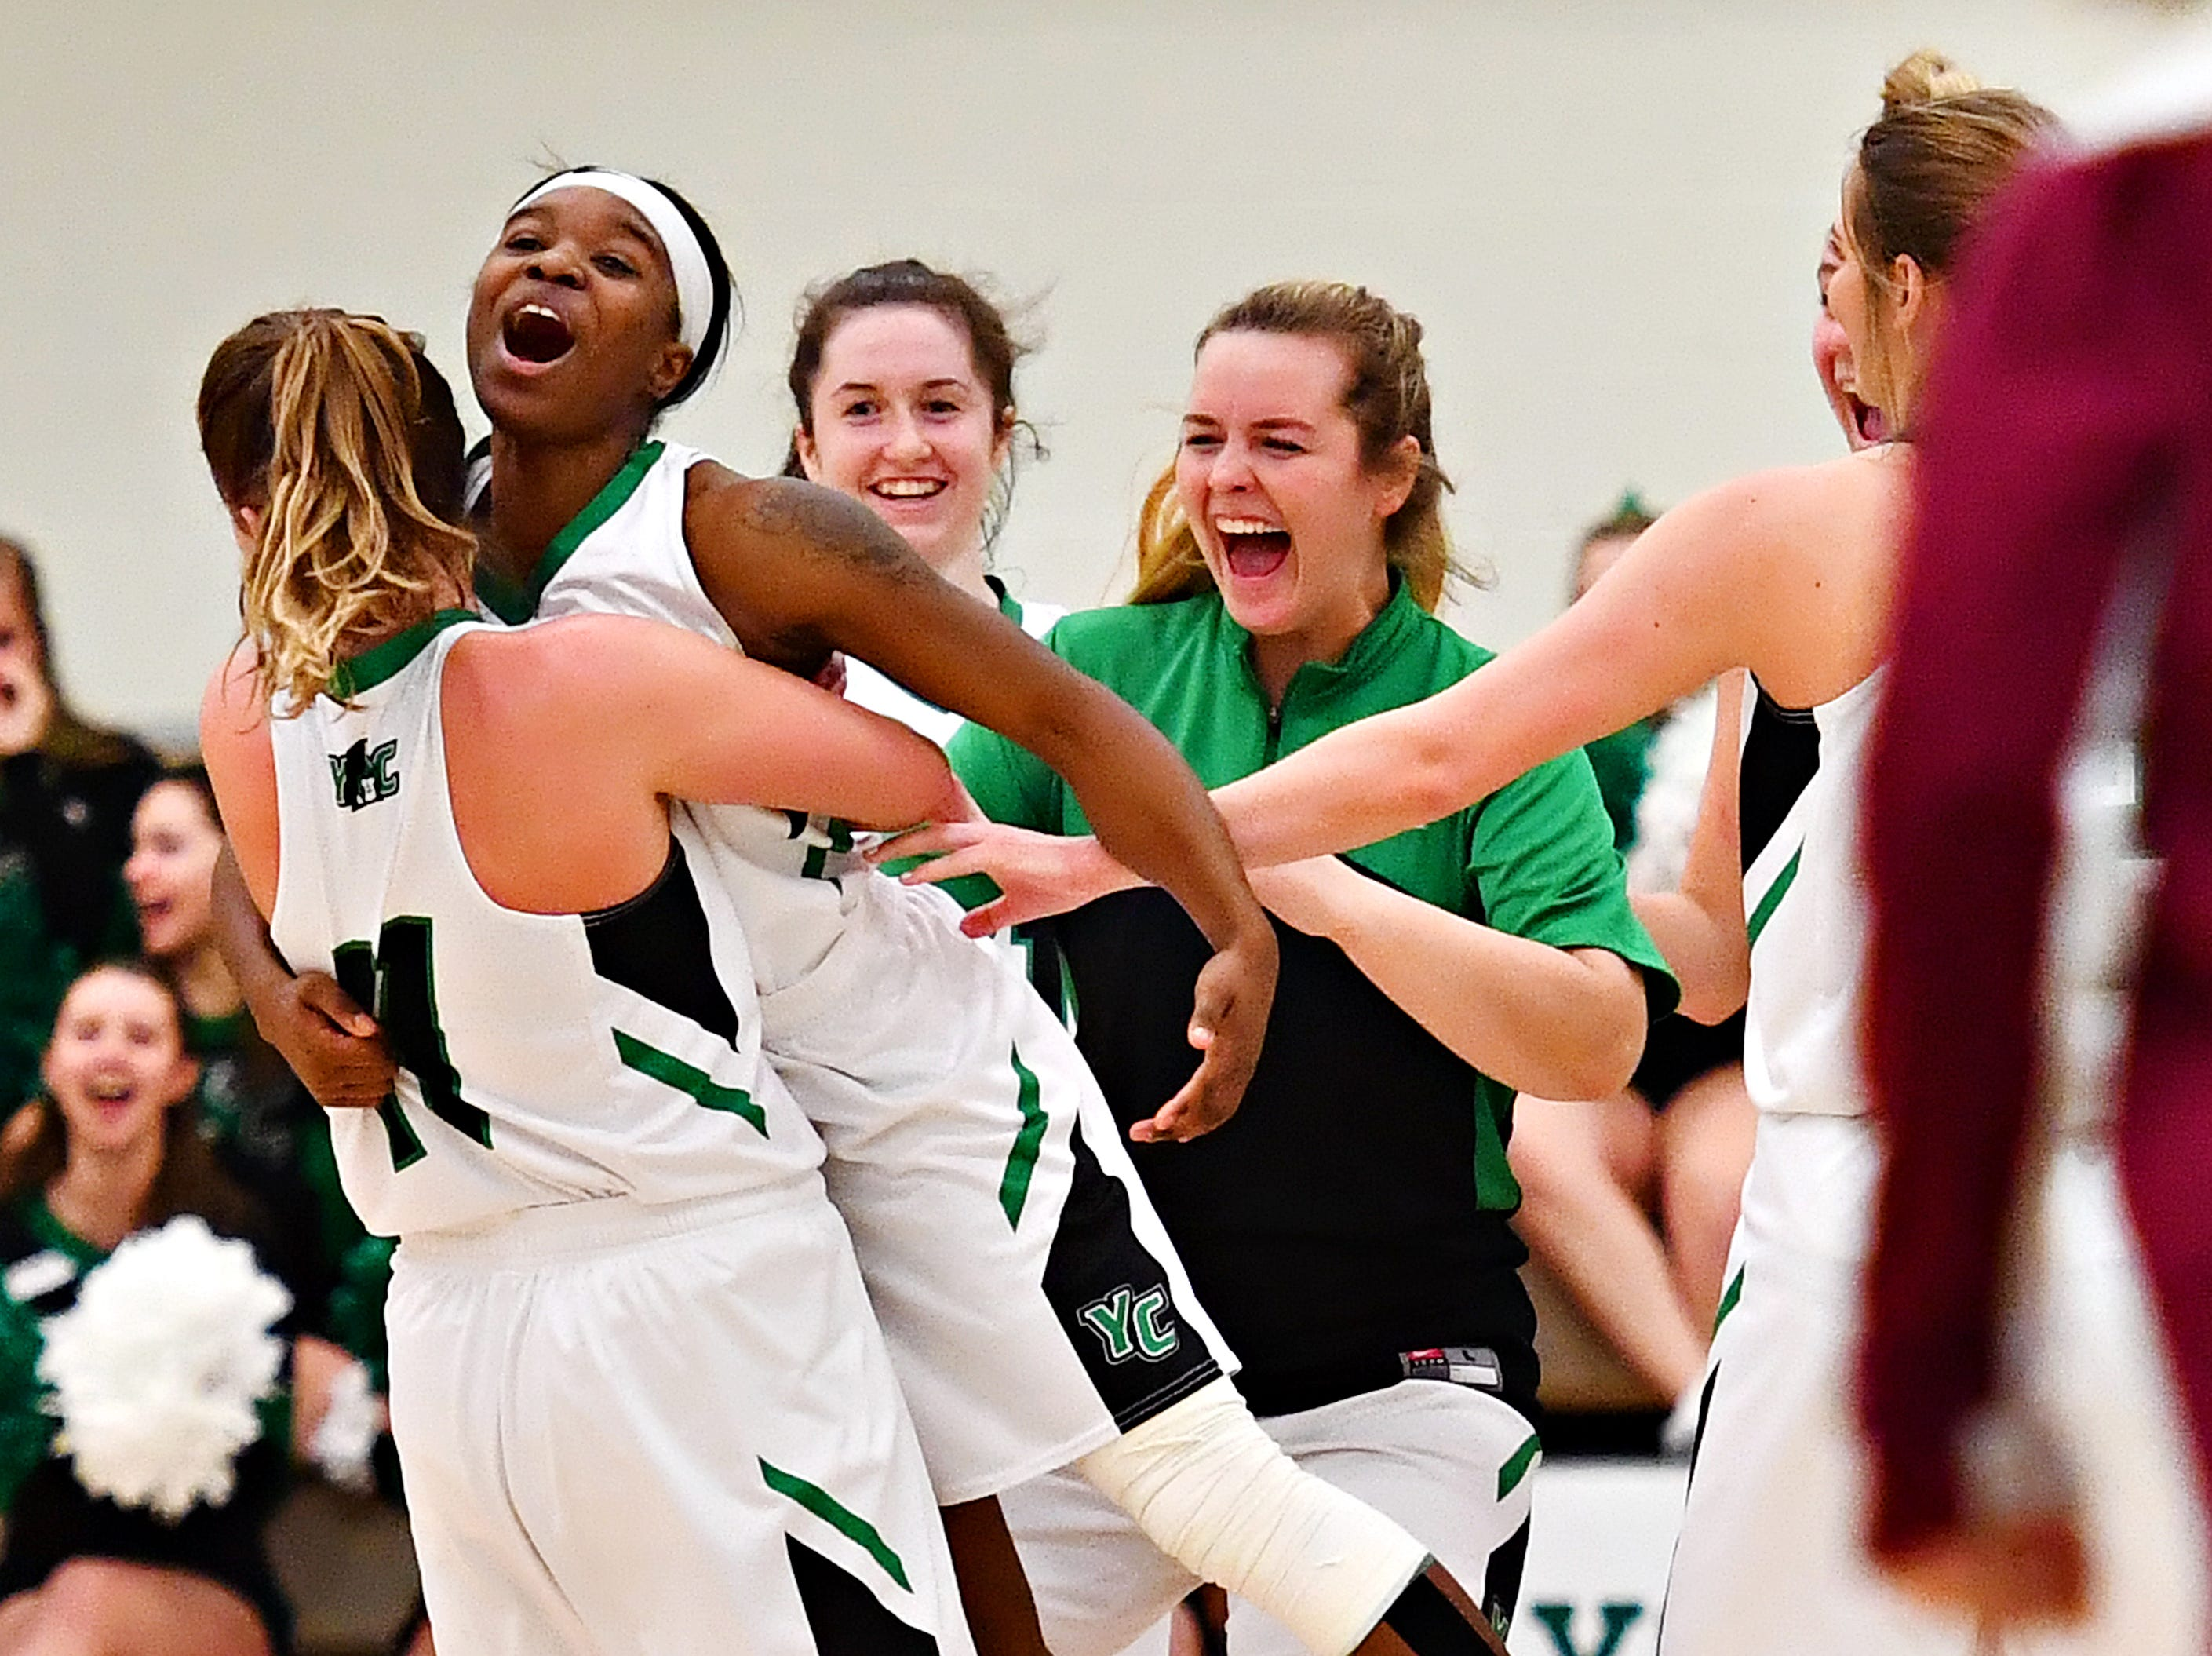 York College celebrates after Debria Hendricks scores on the buzzer at halftime during women's basketball action against Salisbury at Grumbacher Sport and Fitness Center at York College of Pennsylvania in Spring Garden Township, Wednesday, Feb. 6, 2019. Dawn J. Sagert photo